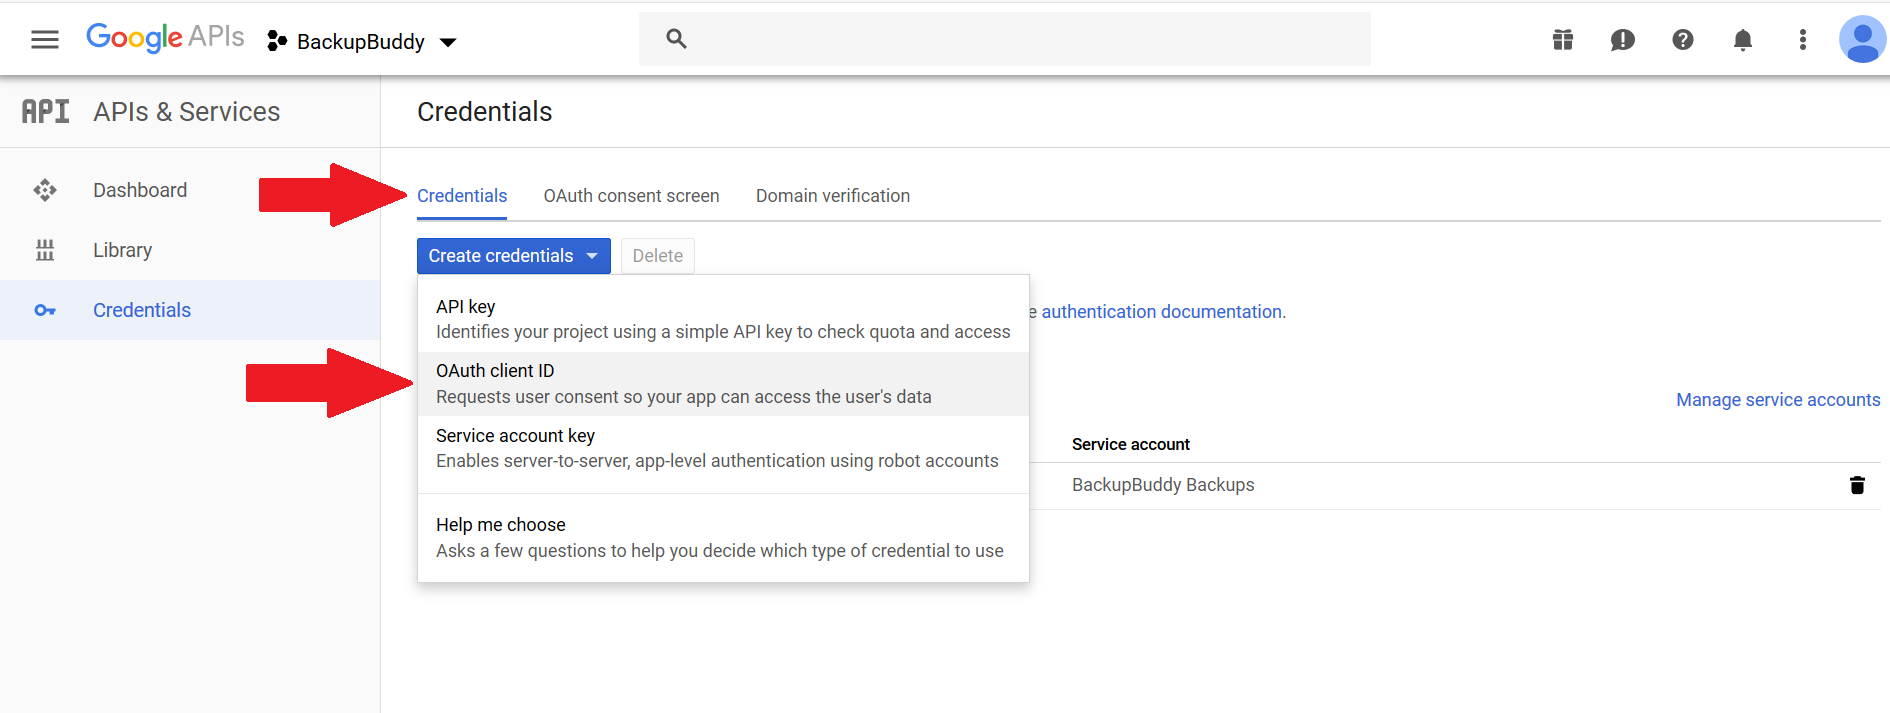 OAuth_Client_ID.png